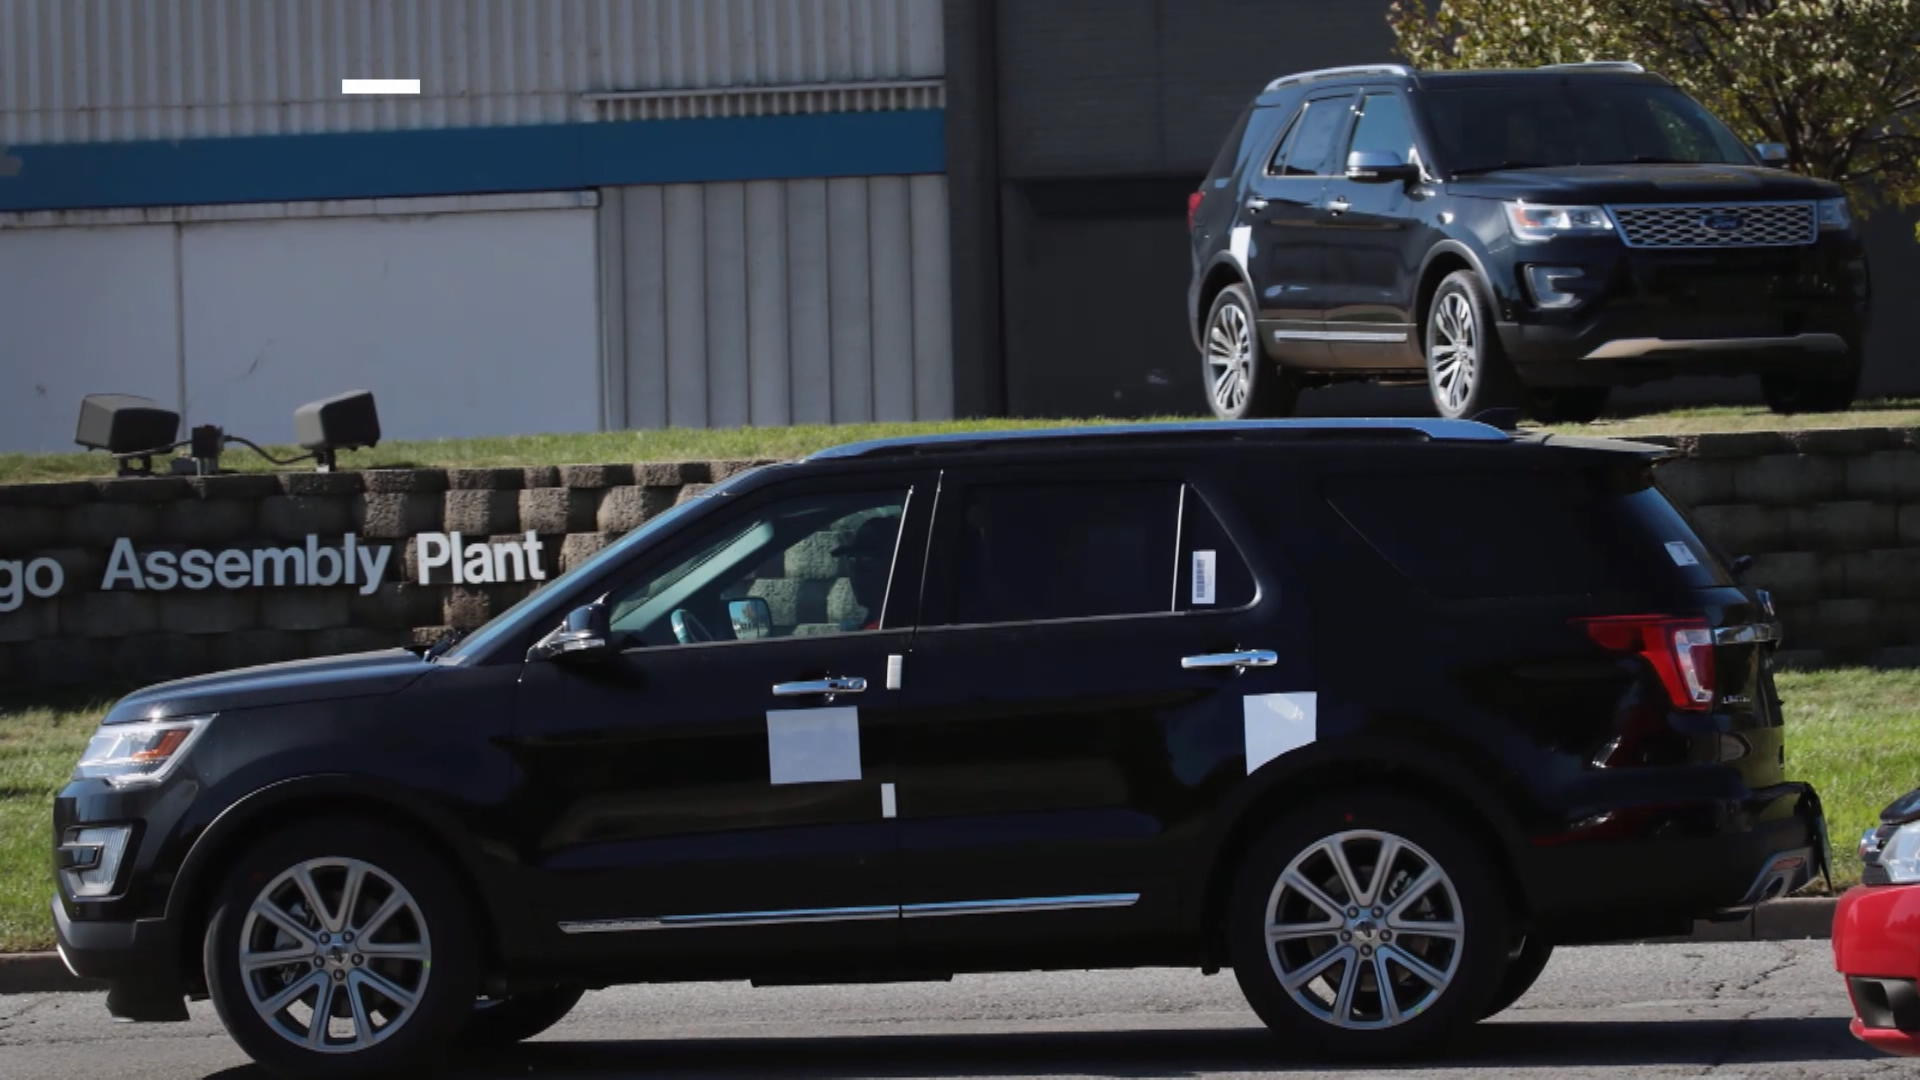 Ford Explorer Drivers Say Their SUVs Are Making Them Sick